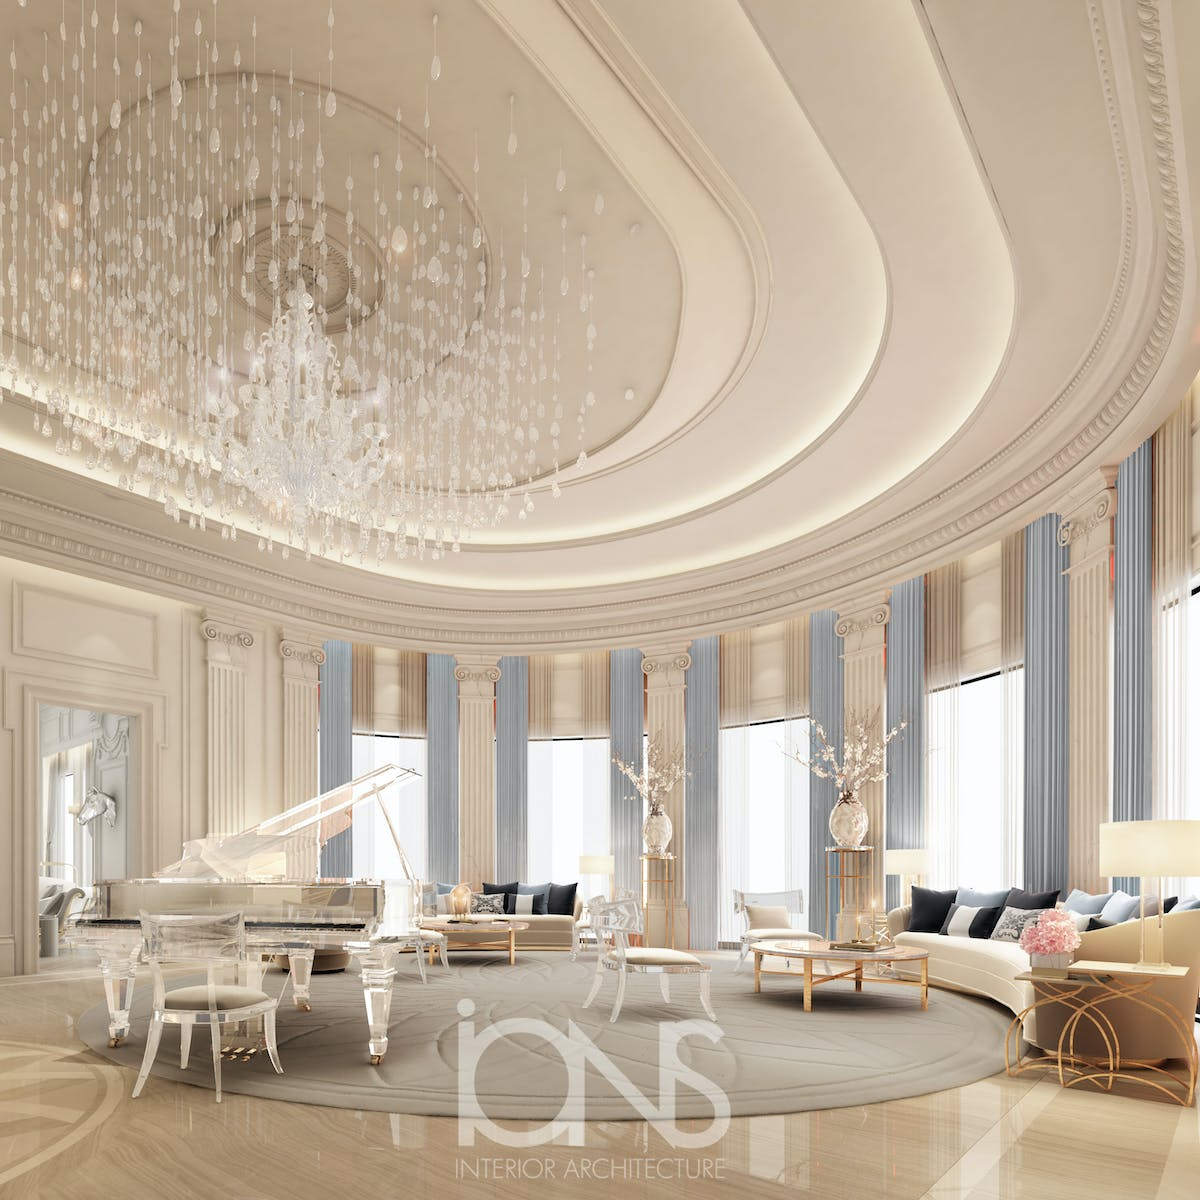 Ions Interior Design Dubai grand piano room design | ions design | archinect